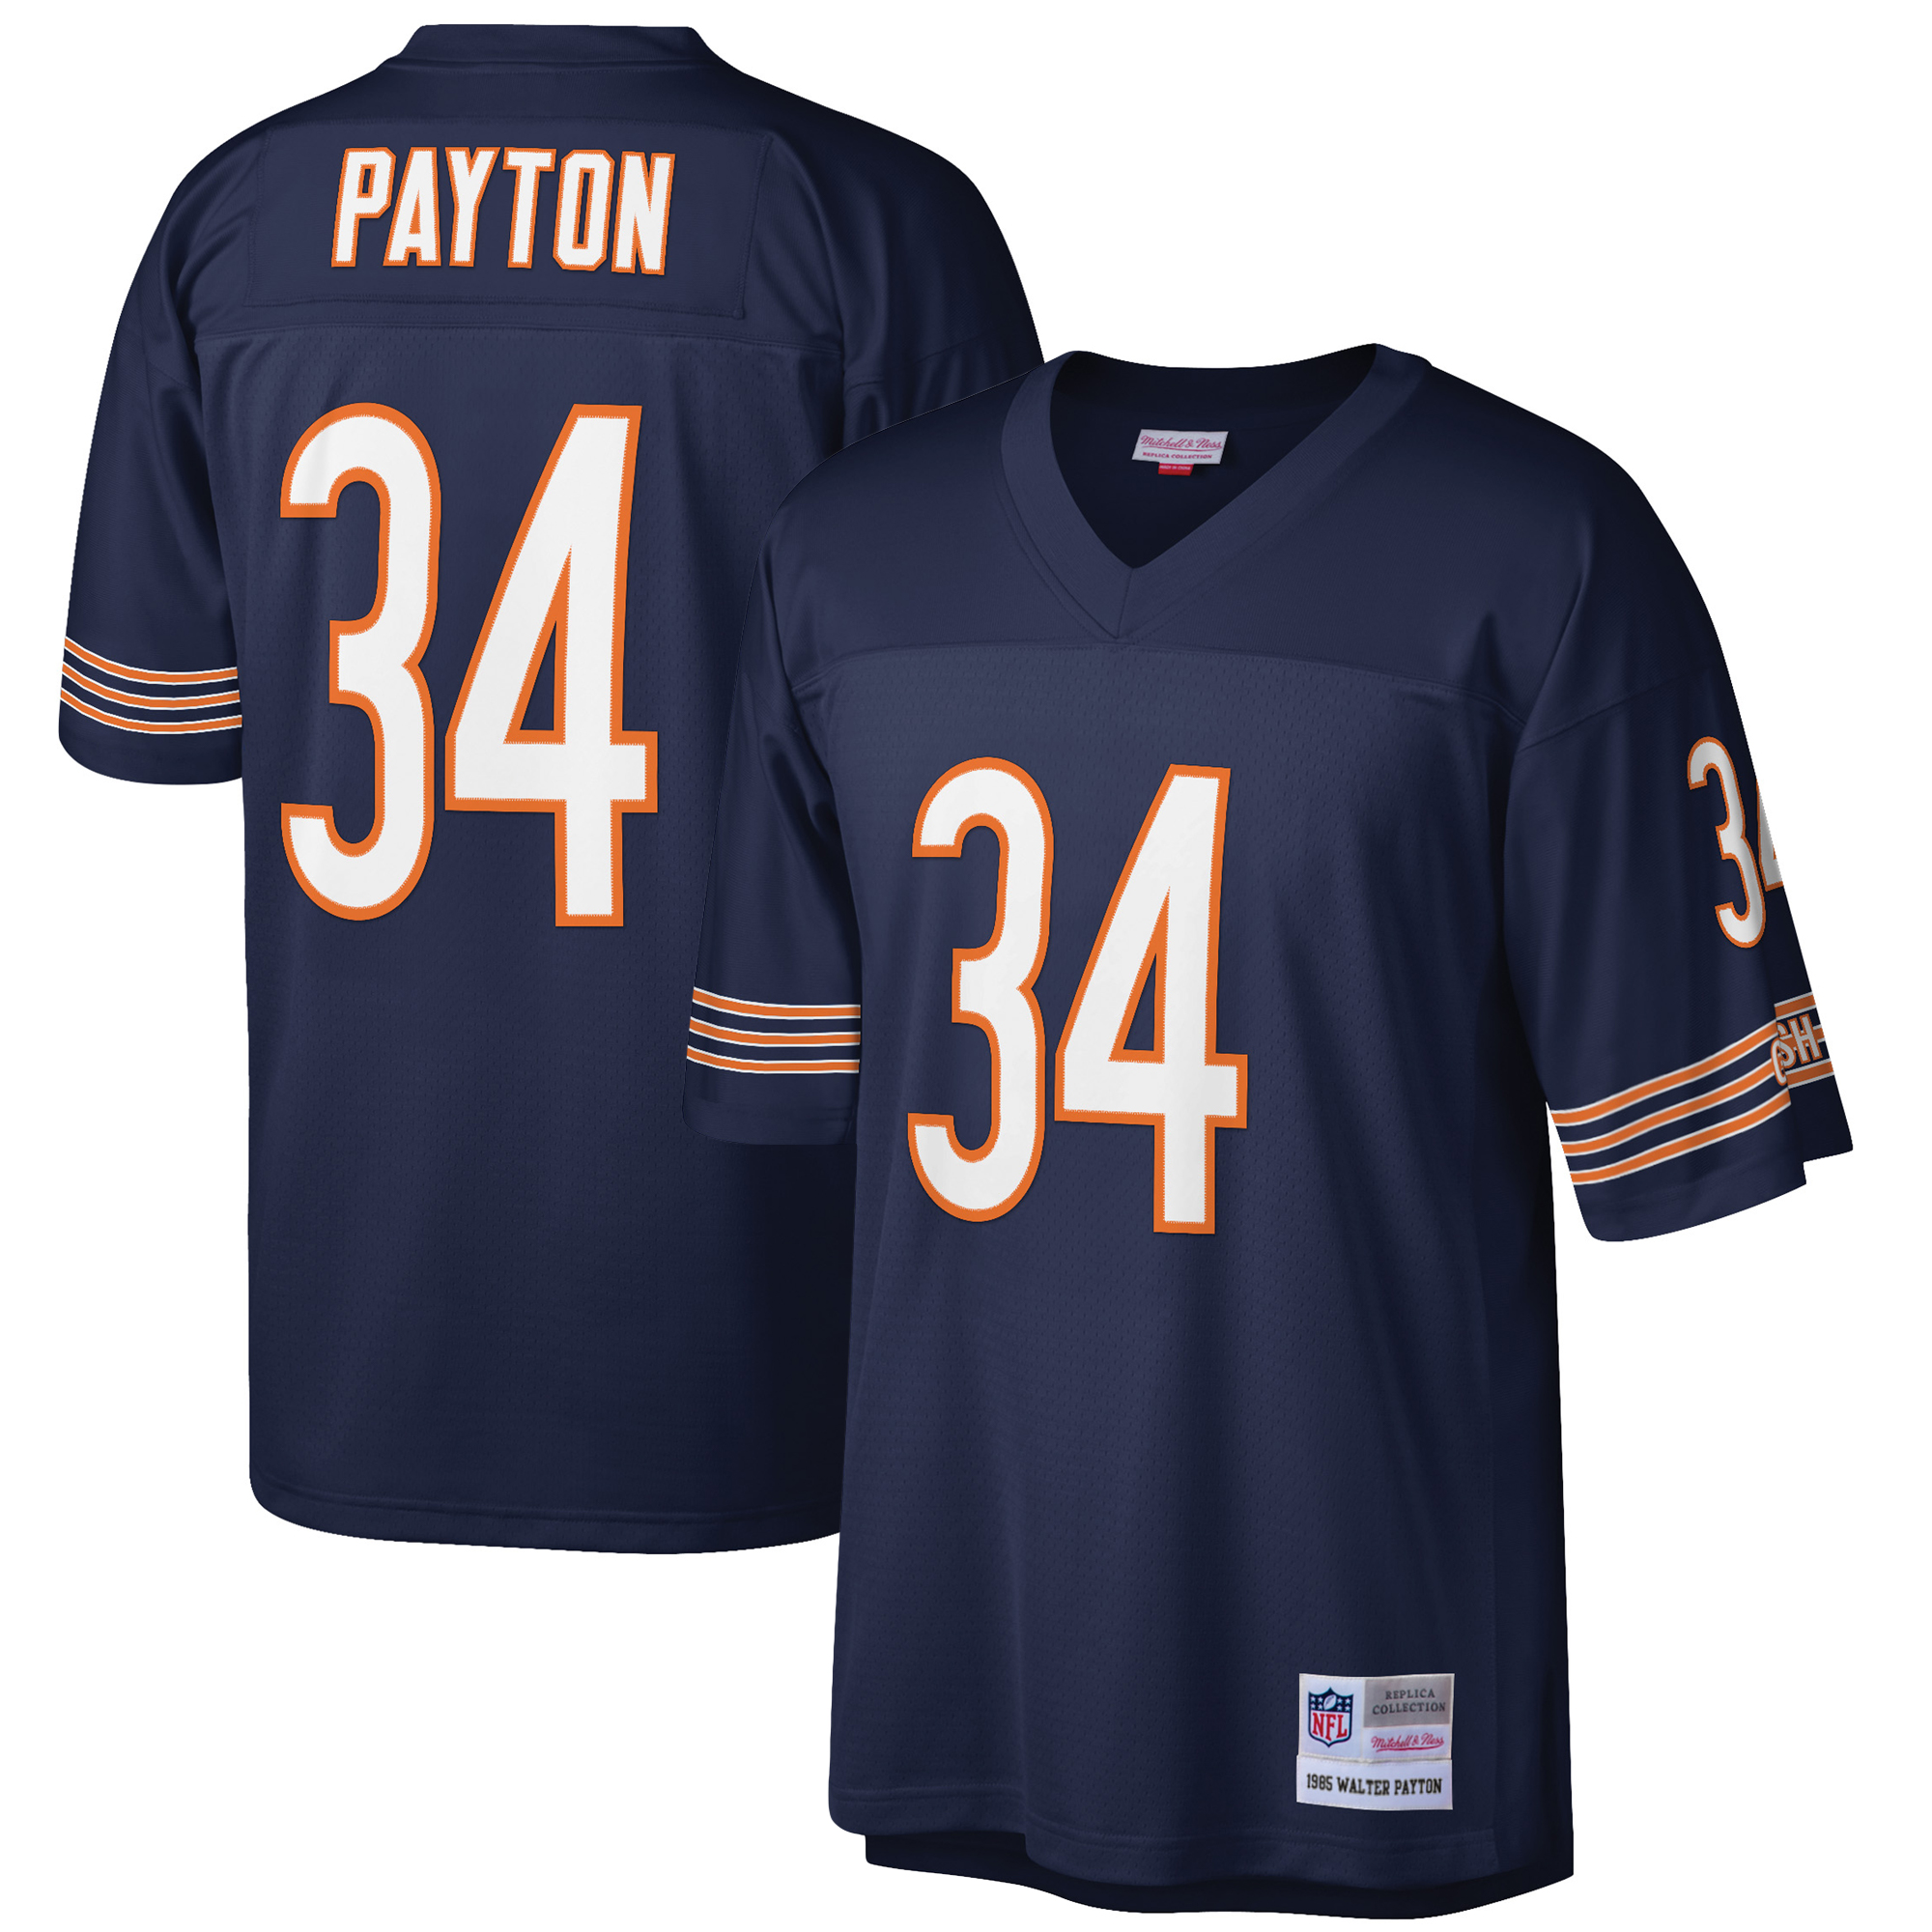 a73c3377 Mens Chicago Bears Walter Payton Mitchell & Ness Navy 1985 Retired Player  Vintage Replica Jersey - Walmart.com